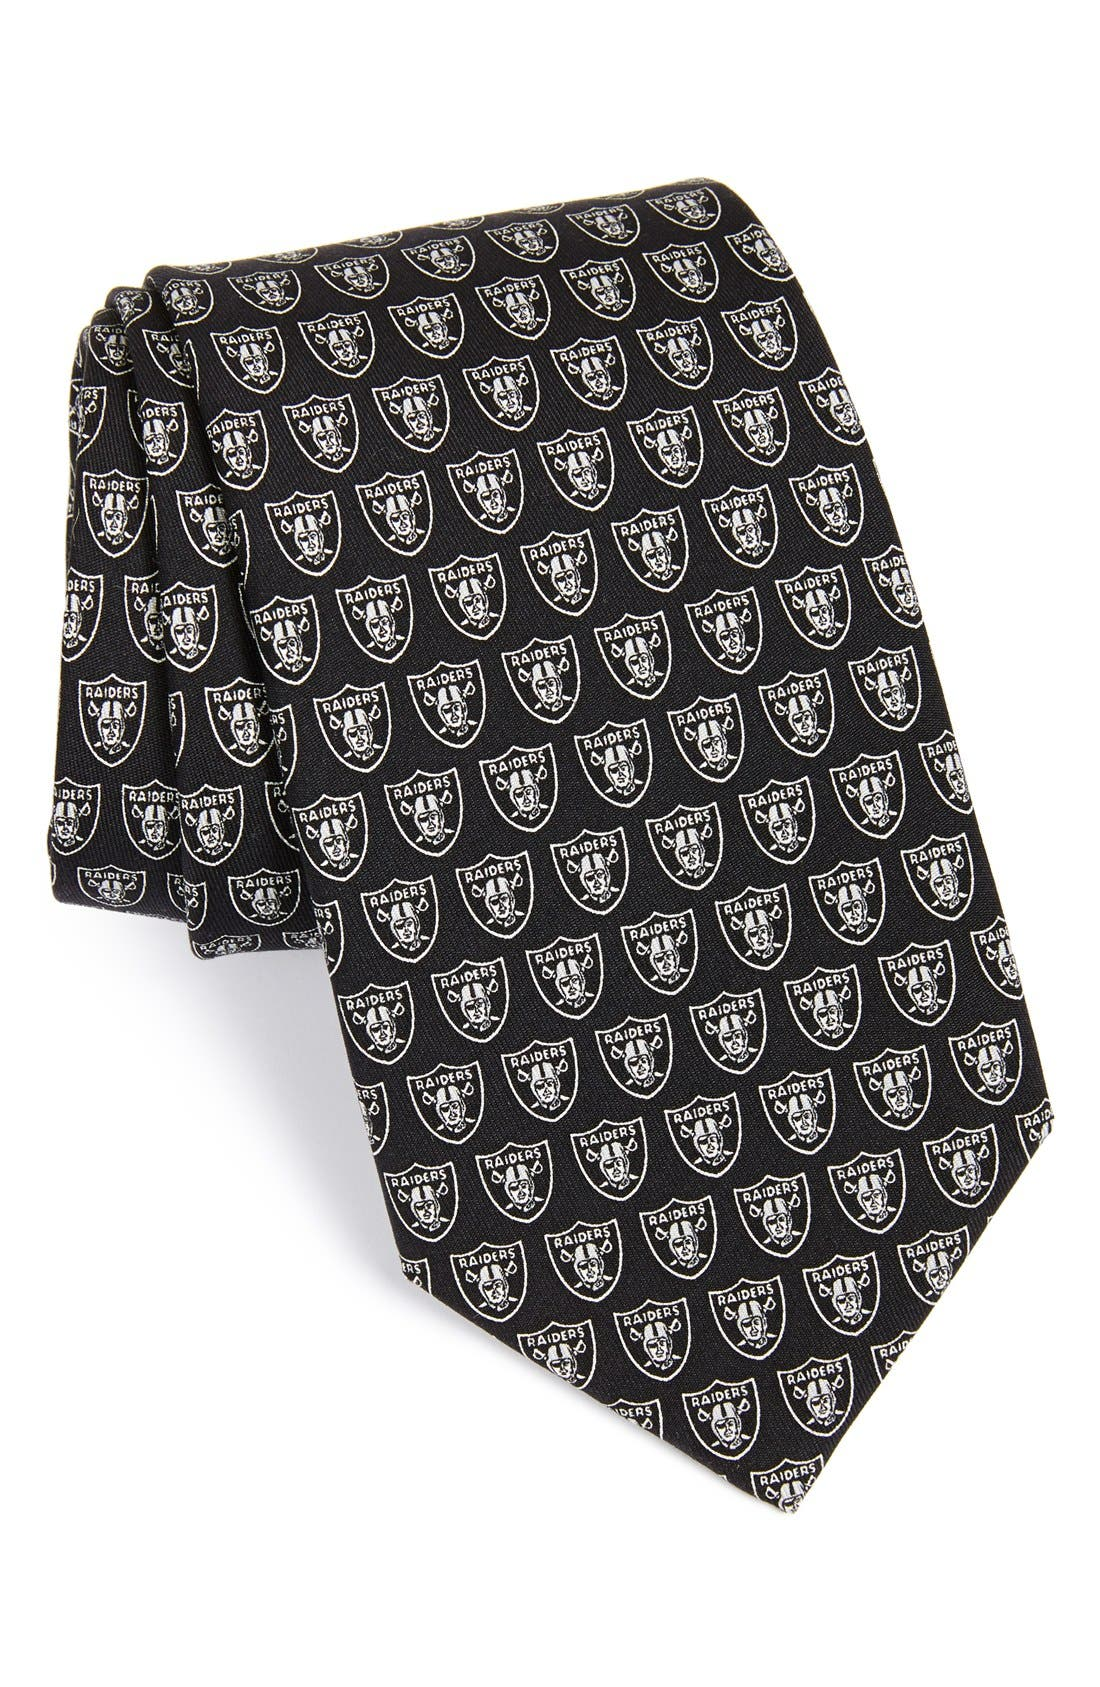 Oakland Raiders - NFL Woven Silk Tie,                             Main thumbnail 1, color,                             Black